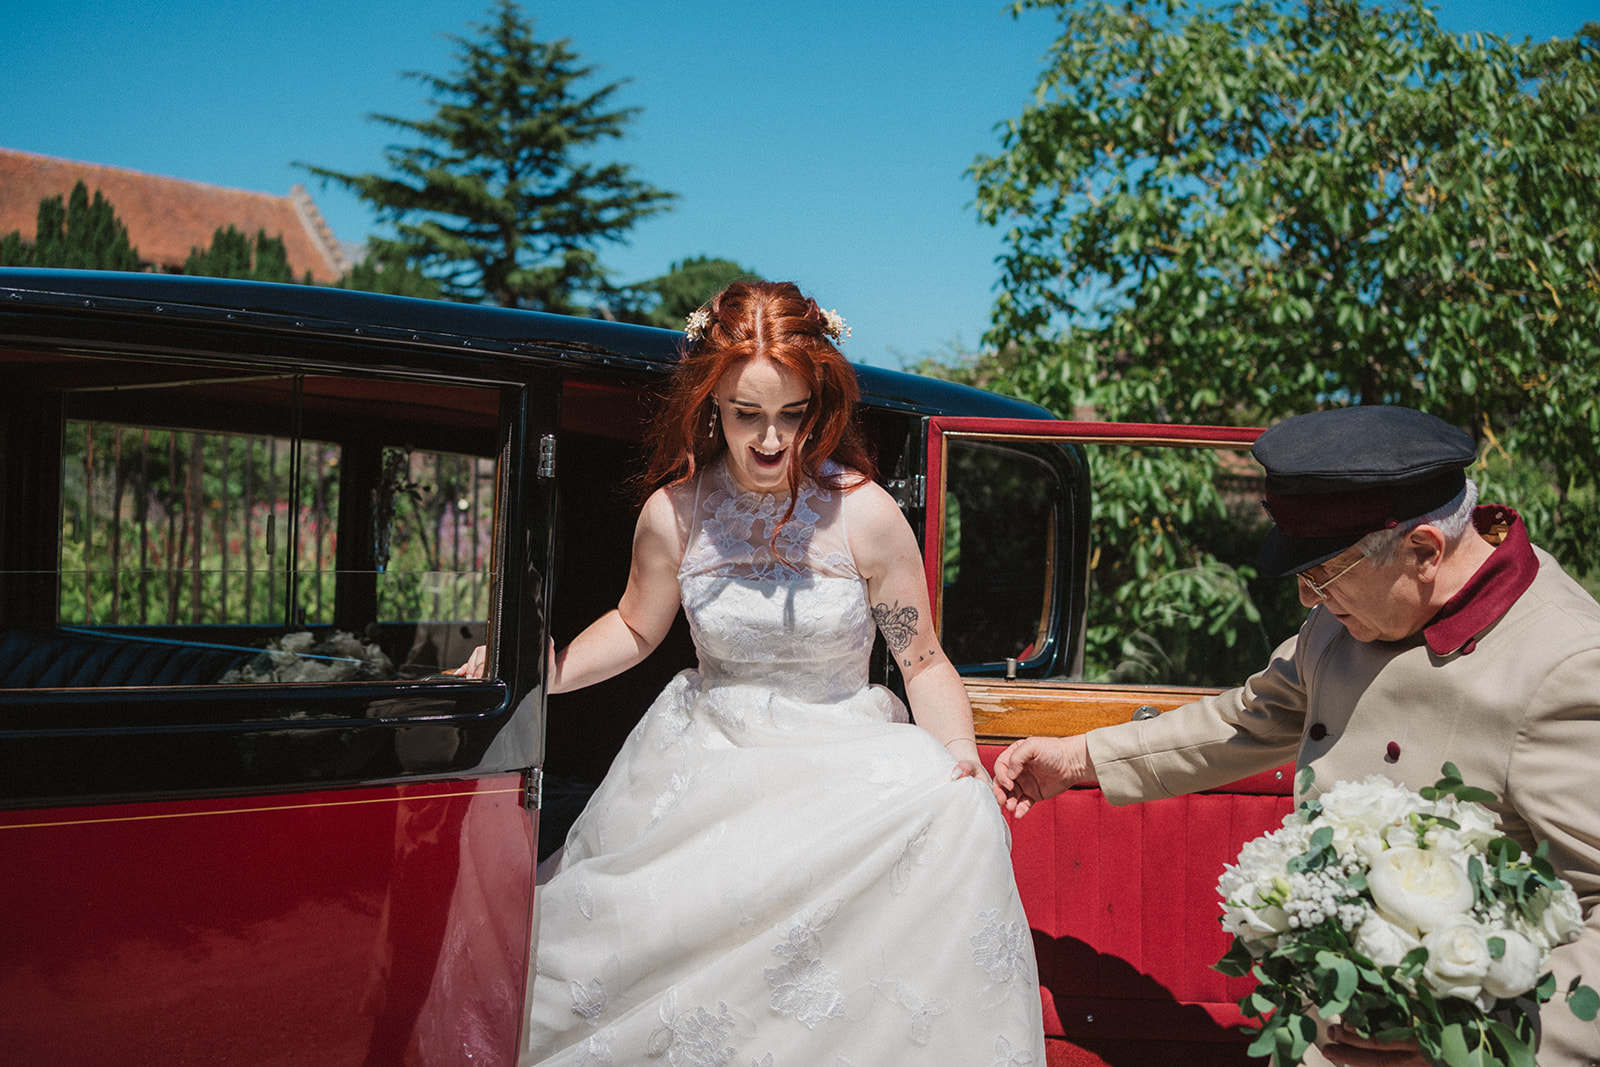 The bride being helped out of the wedding car by the chauffeur